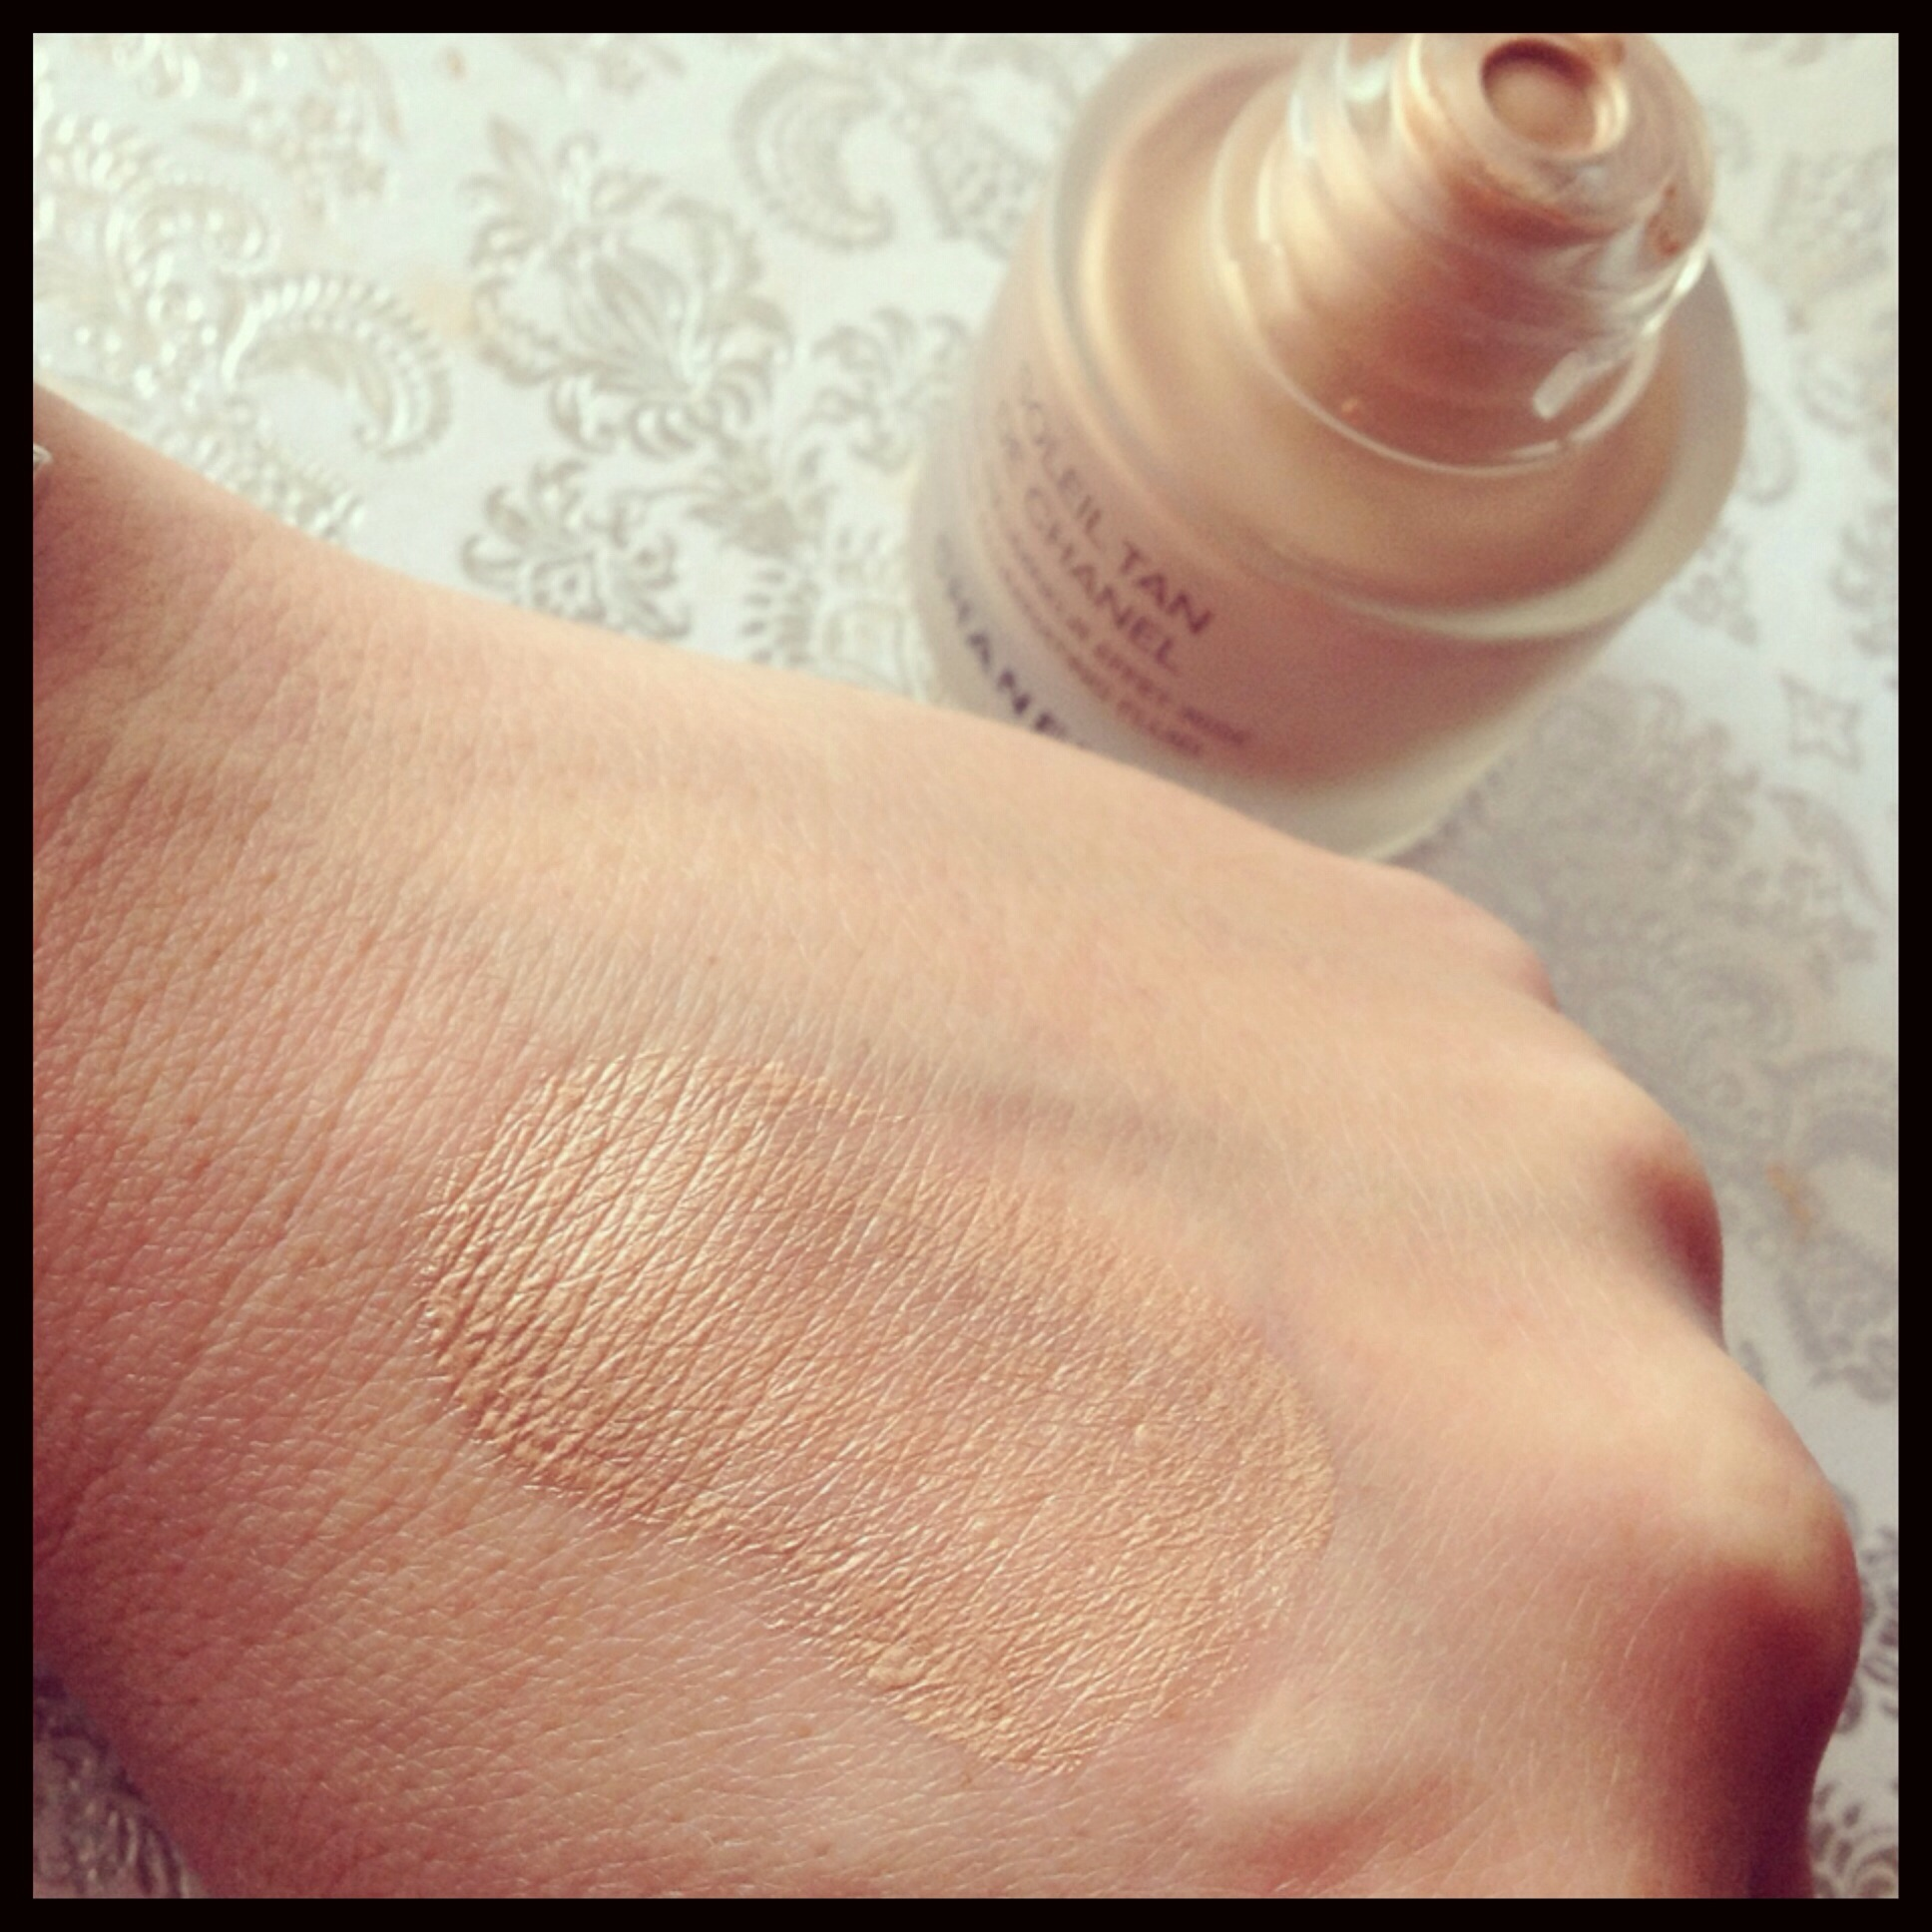 Soleil Tan De Chanel Bronzing Makeup Base by Chanel #21